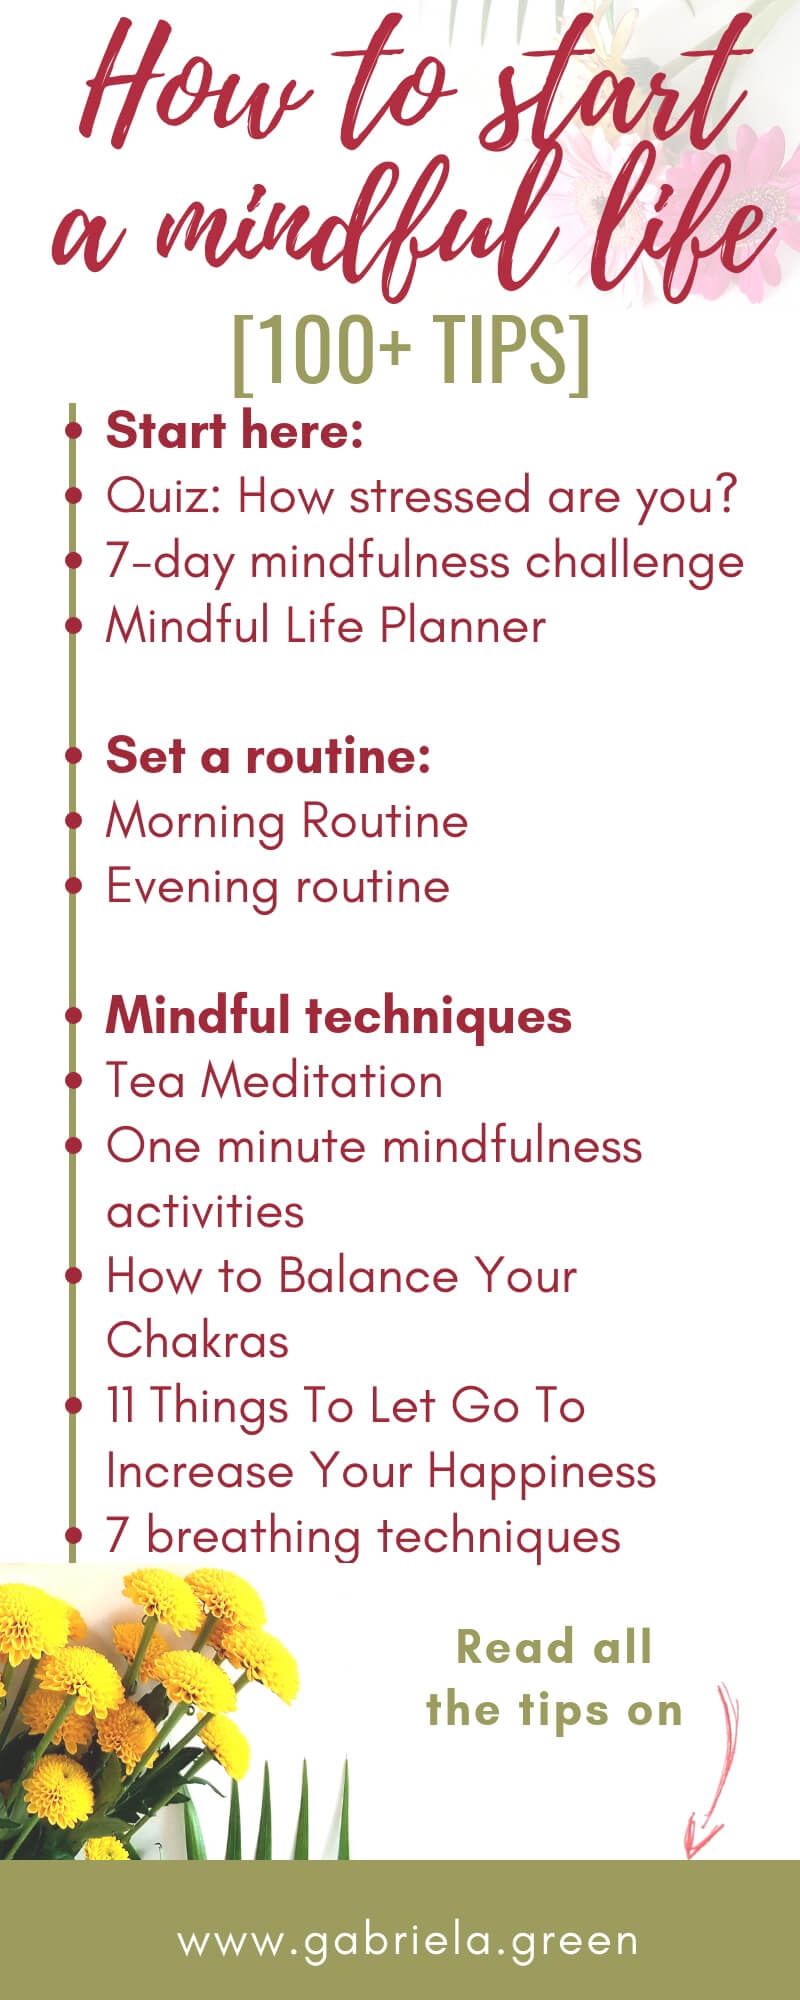 How to start a mindful life _ www.gabriela.green (1)